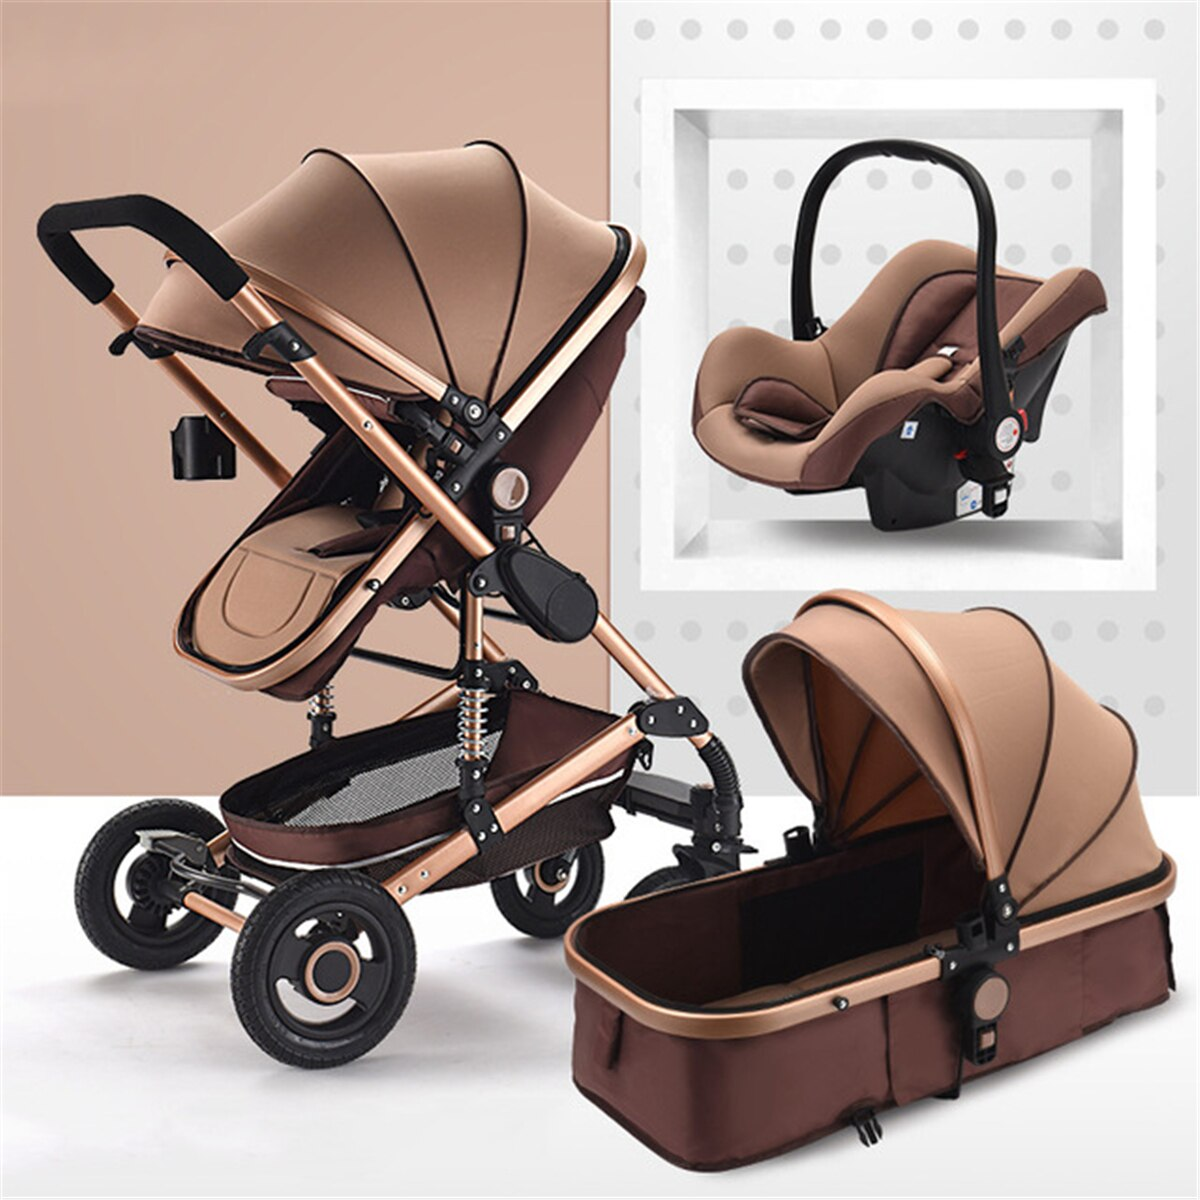 New Luxury Baby Stroller 3 in 1 Portable Travel Baby Carriage Folding Prams Aluminum Frame High Landscape Car for Newborn Baby